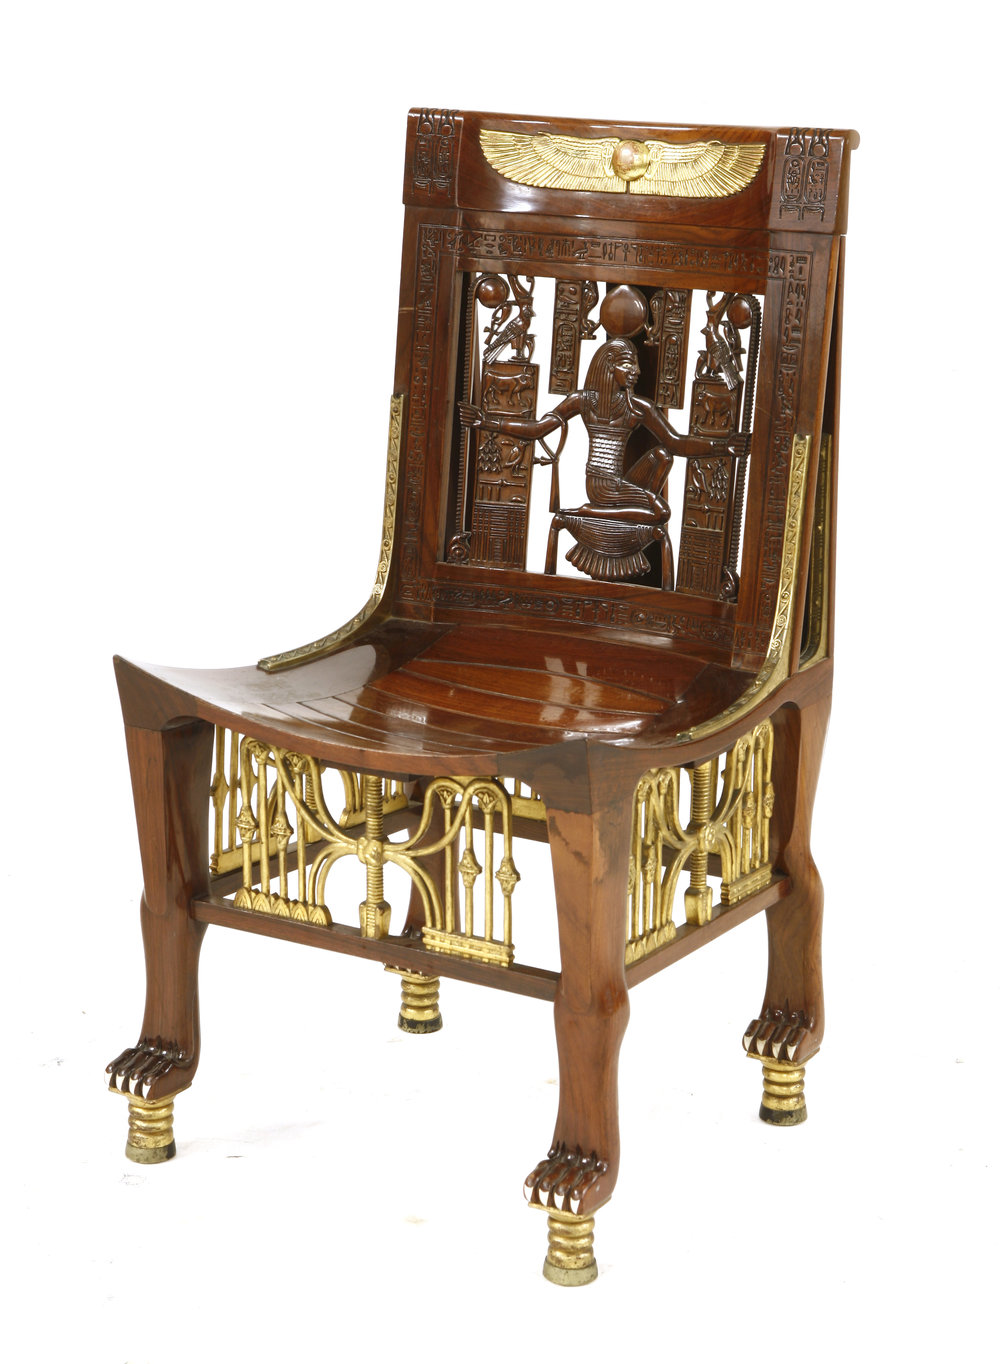 A strong selection of objects from the Art Deco period includes a very high quality copy of the bone-inlaid and parcel gilt ceremonial chair found in the tomb of Tutankhamen in 1922. A splendid example of 'Egyptomania' - the fashion for all things ancient Egyptian that followed Howard Carter's famous discovery - it dates from c.1925. Bought by Sworders' vendor for over £25,000, it carries an auction estimate of £10,000-15,000.